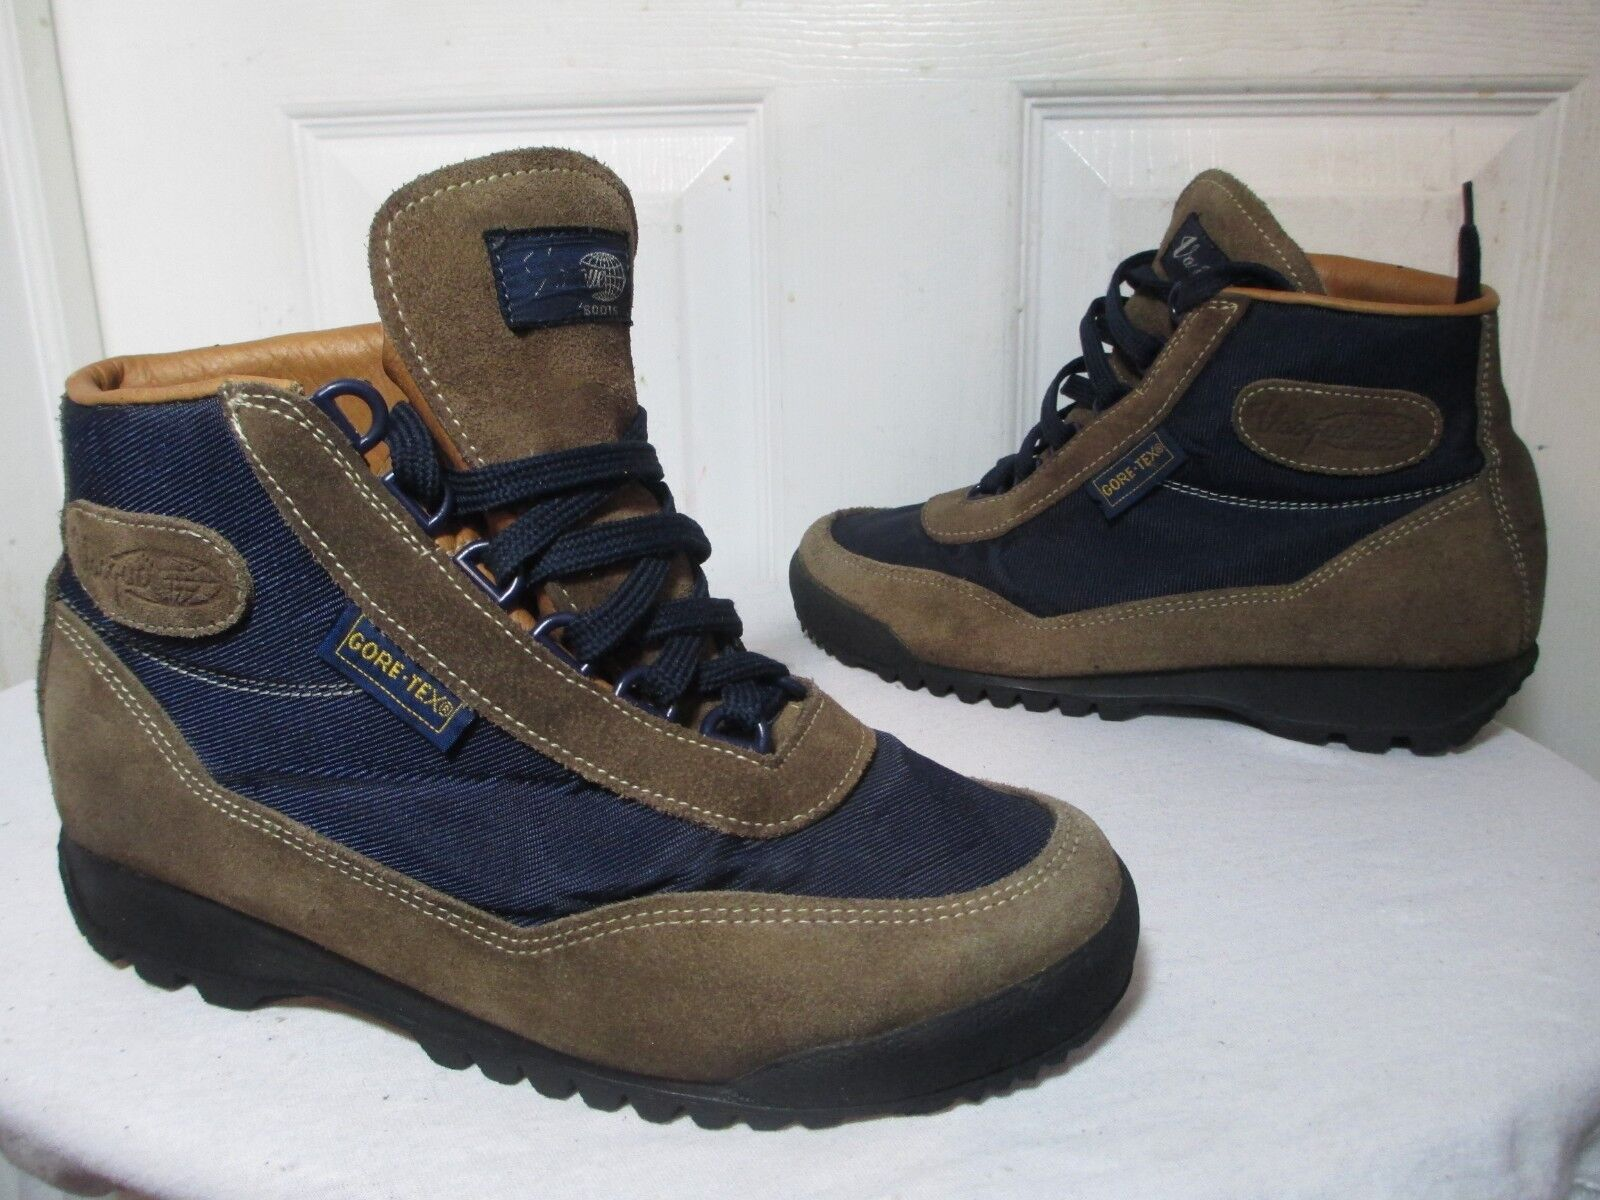 VASQUE SKYWALK GORE-TEX HIKING TRAIL BOOTS OLIVE blueES MEN'S SZ 8 MADE IN ITALY